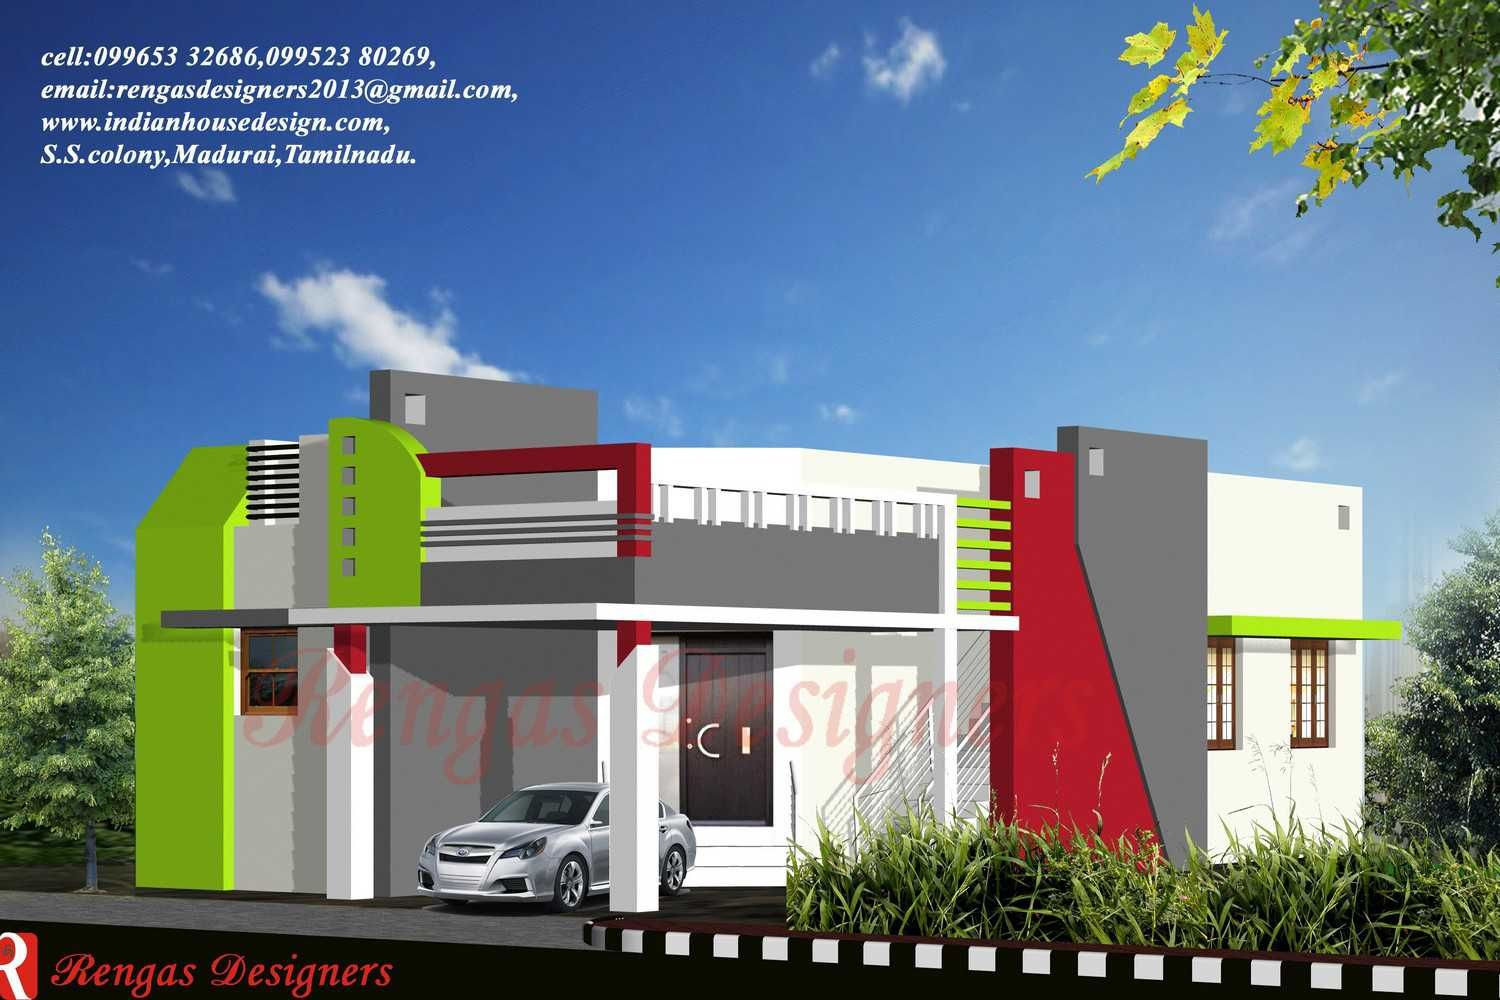 Front elevation designs front elevation house house elevation front  elevation indian house designs small kitchen designs indian   Gate    Pinterest   Indian  front elevation designs front elevation house house elevation  . Home Elevation Designs. Home Design Ideas